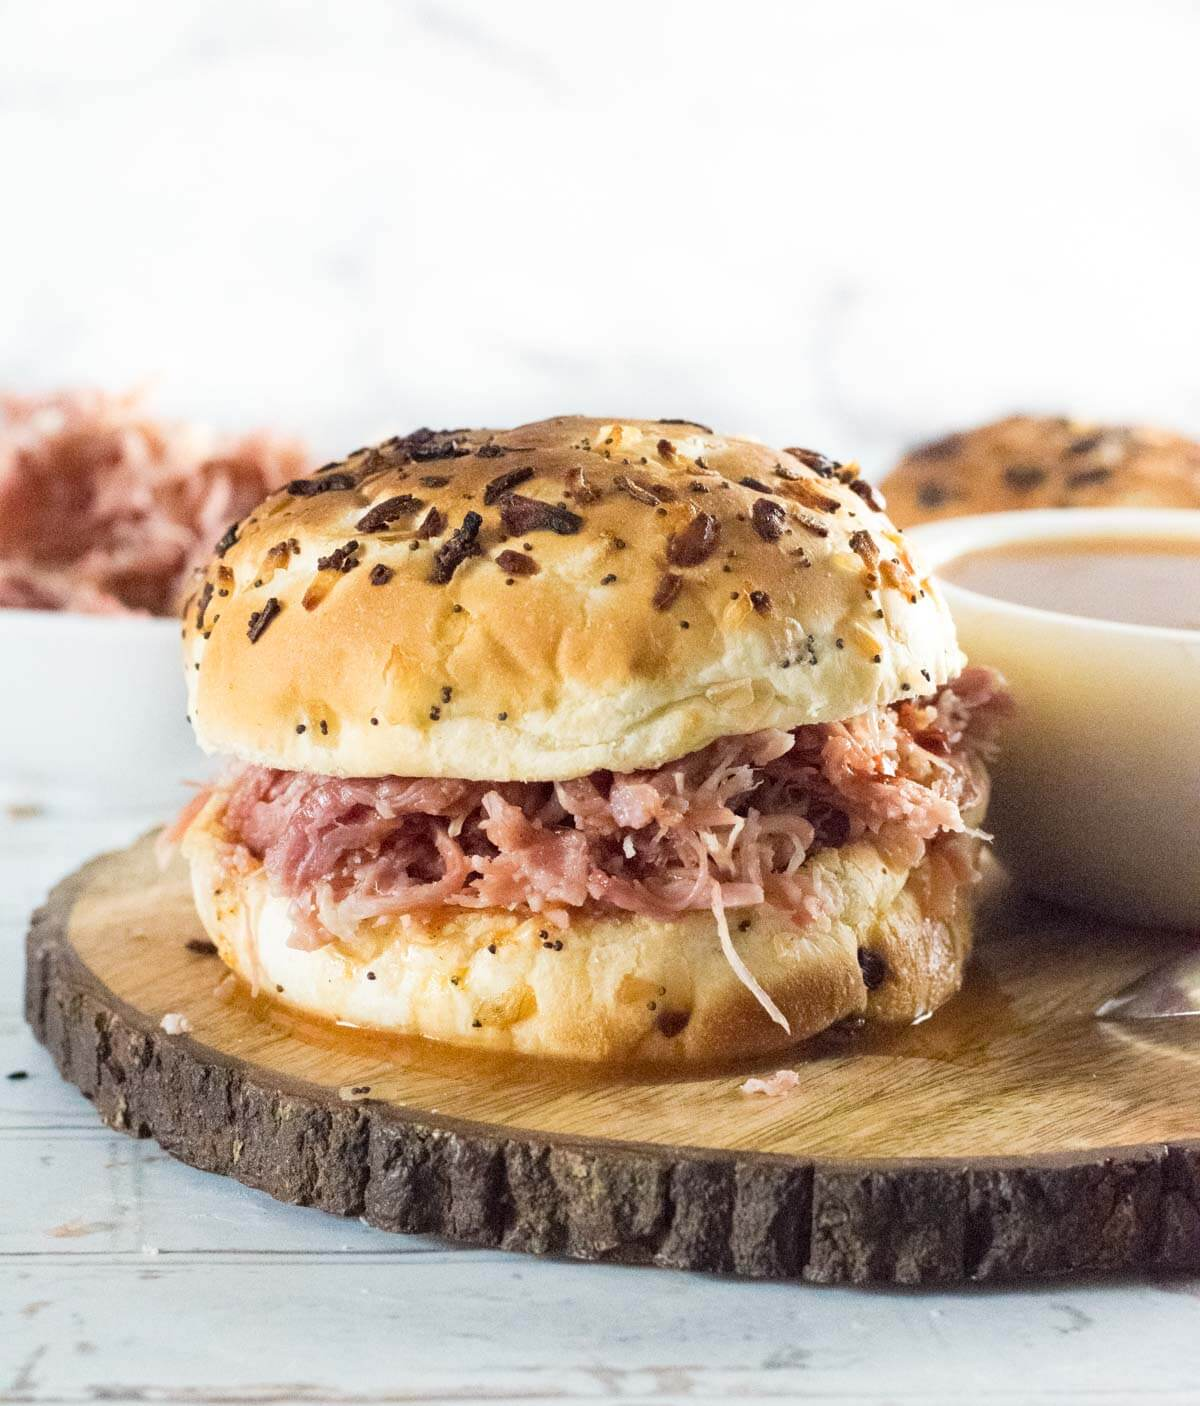 Pulled pork sandwich with finishing sauce.